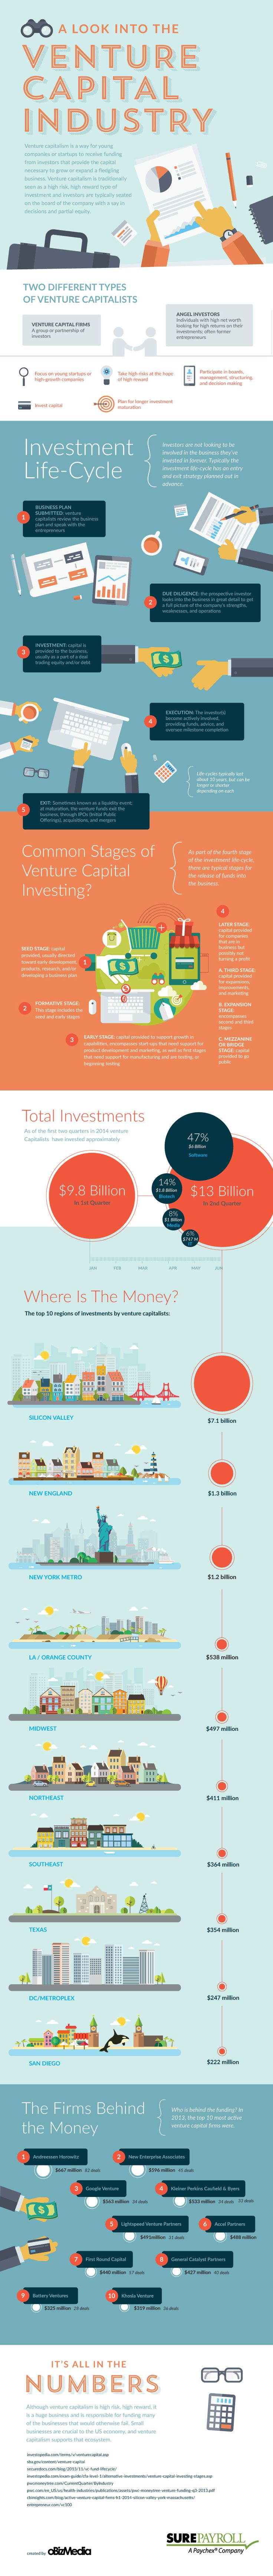 [Infographic] A Look into the Venture Capital Industry  How does a company end up getting venture capital funding? How much money is exchanged? Venture capitalists invested $22.8 billion in the 1st half of 2014.